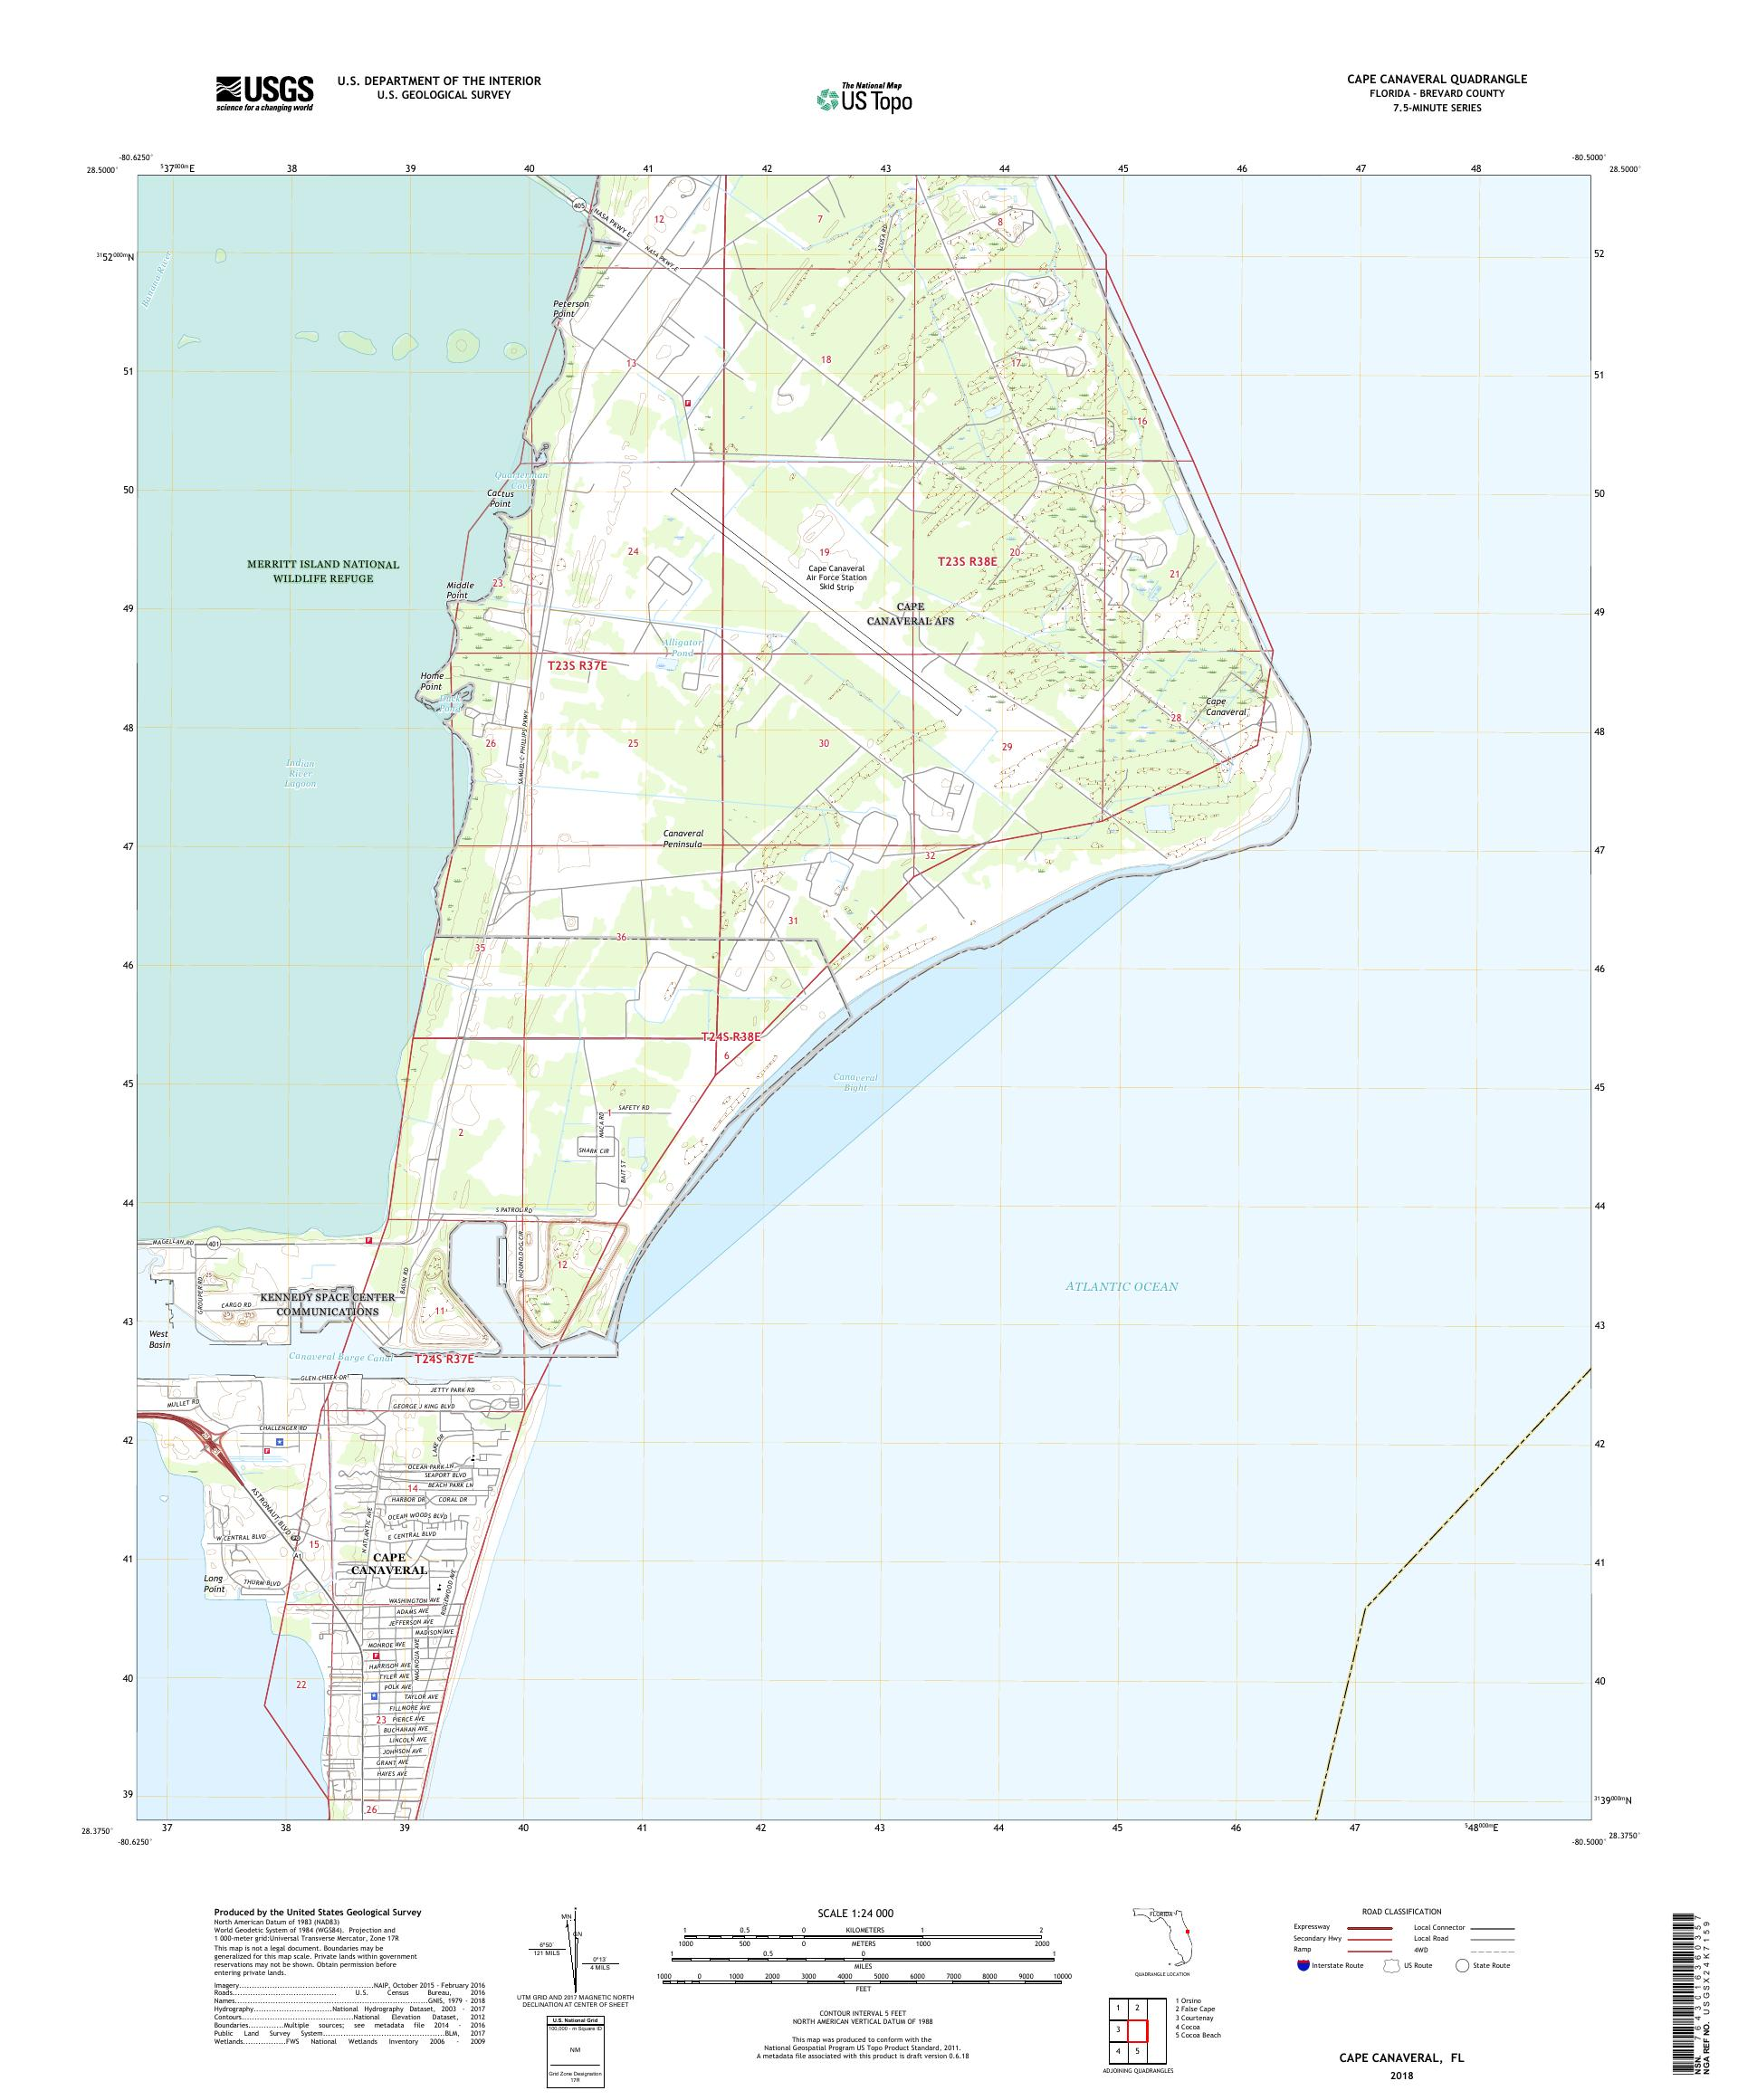 MyTopo Cape Canaveral, Florida USGS Quad Topo Map on myakka map, southwest gulf coast map, cape kennedy map, frostproof map, cape blanco map, cape hatteras map, canaveral groves map, beach in indialantic fl map, lake okeechobee map, gladeview map, cape cod map, great basin map, south daytona beach map, canaveral port authority map, florida map, canaveral barge canal map, st. augustine map, key west map, cape flattery map, the everglades map,